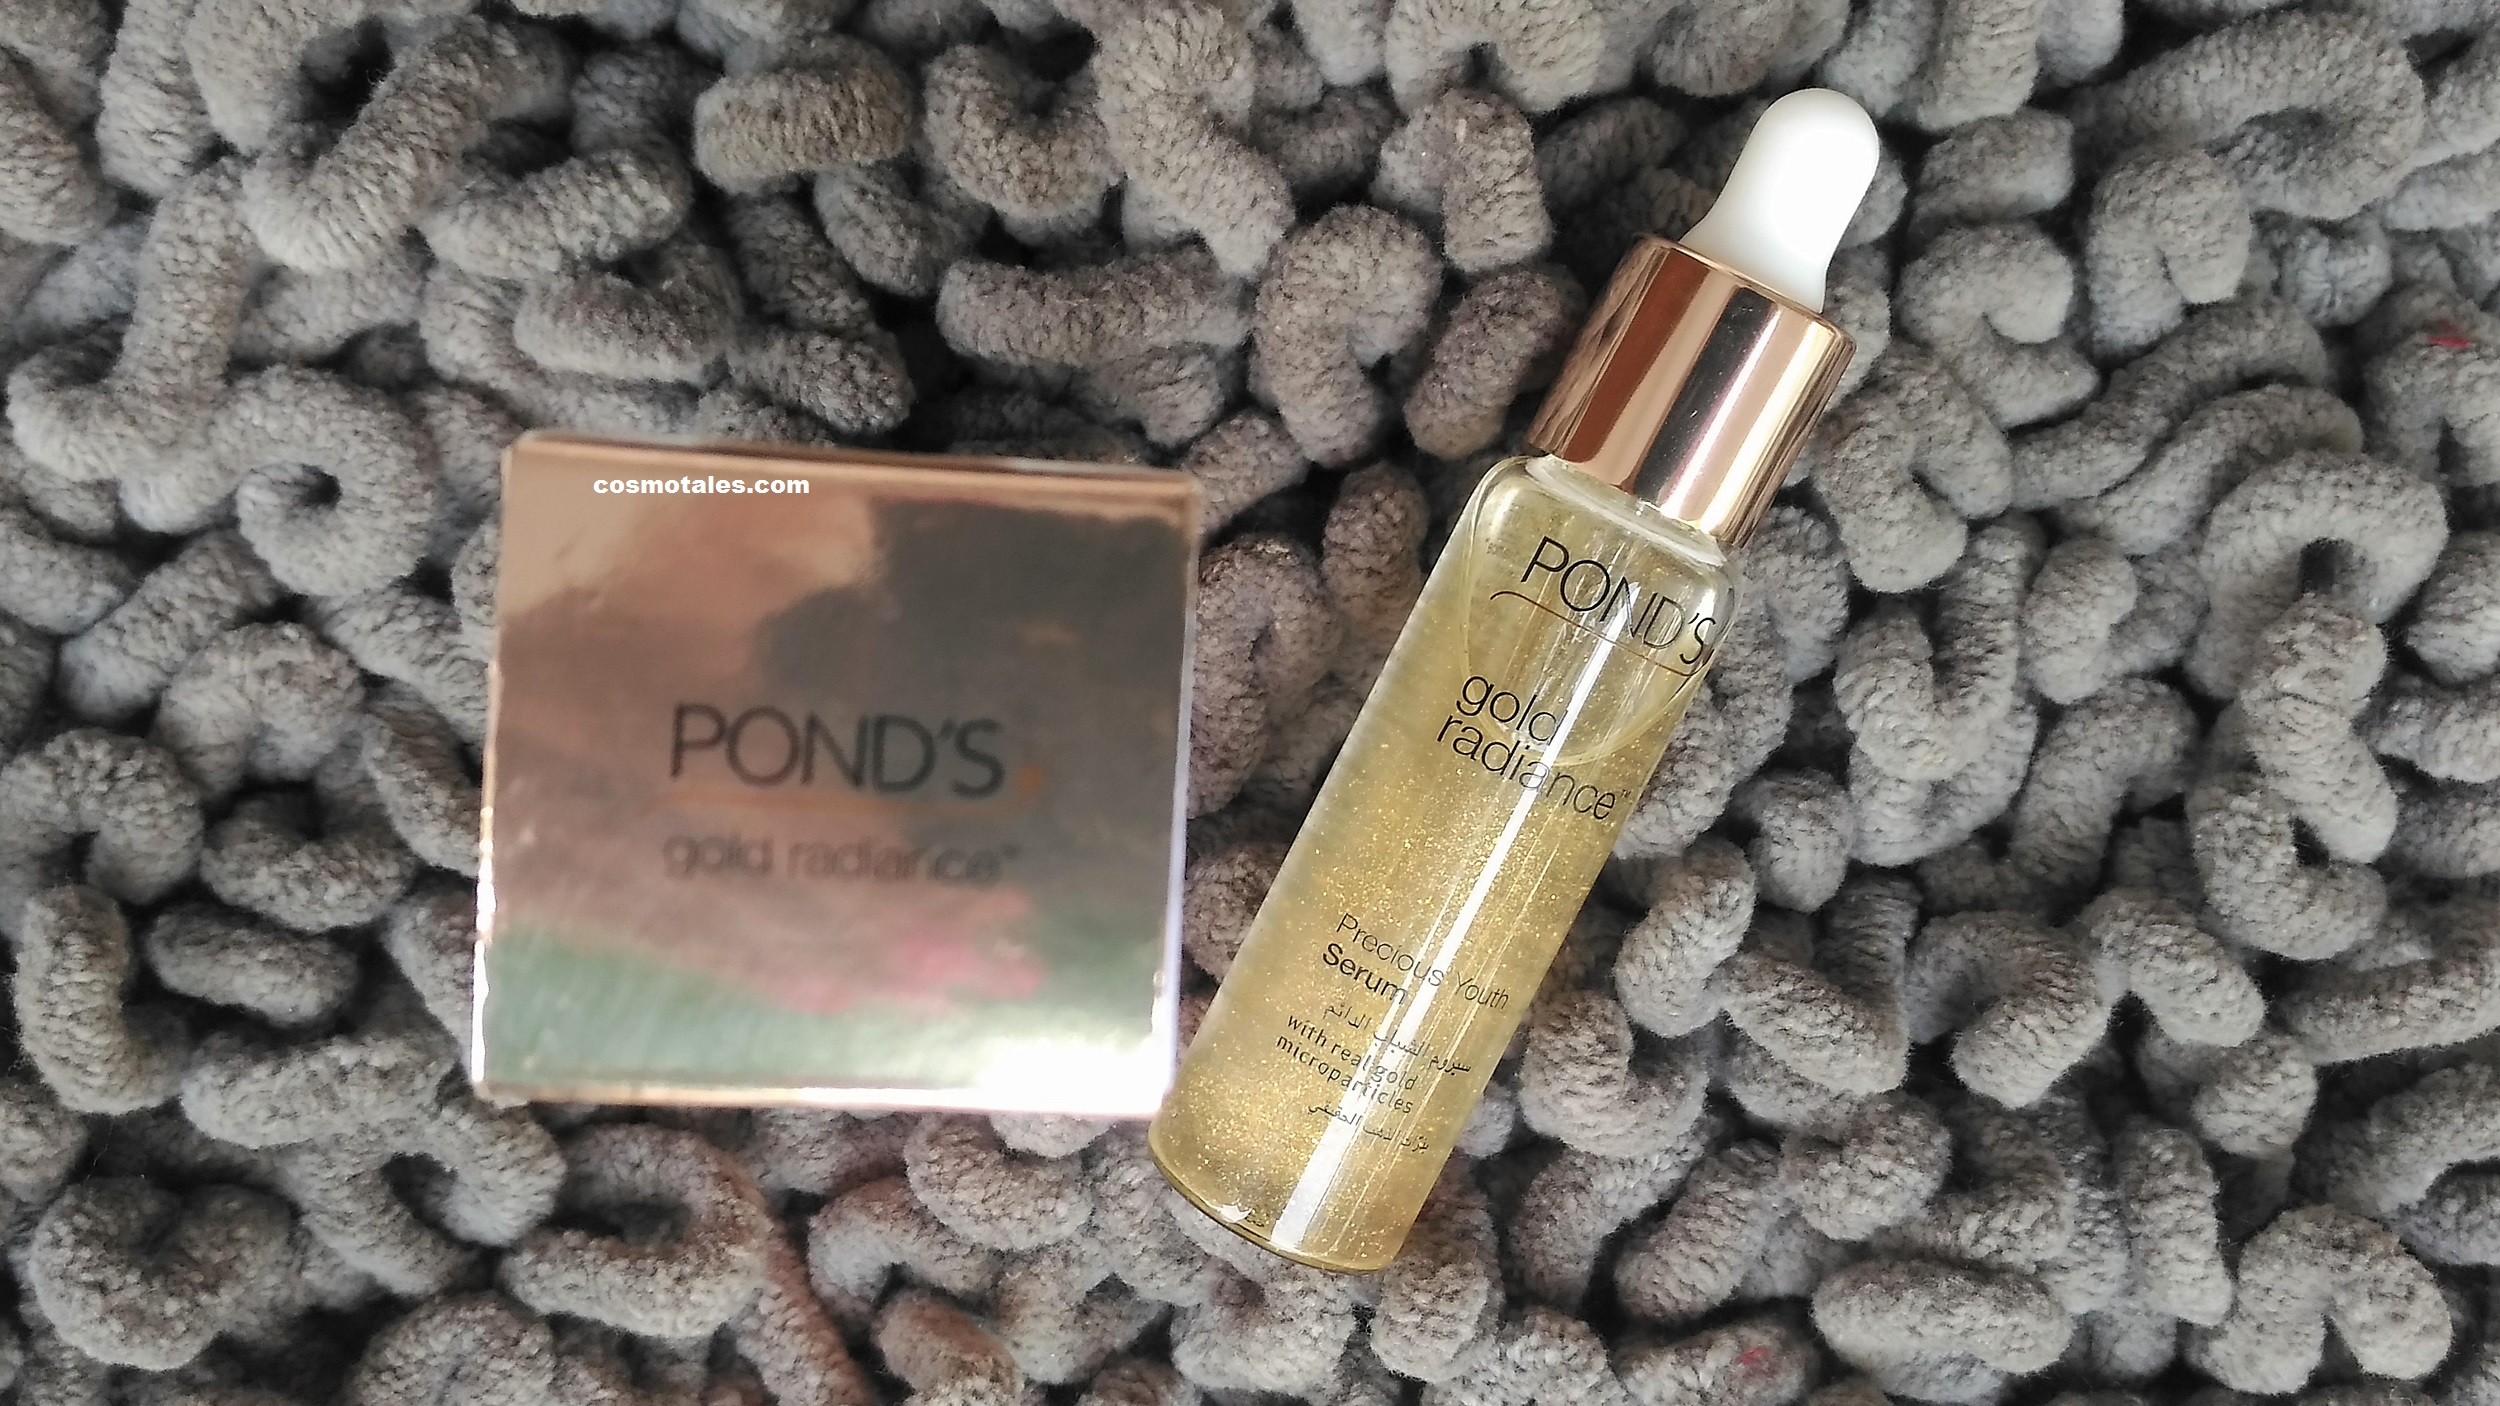 Ponds Gold Radiance Precious Youth Serum Review Flawless White Ultra Luminous 30ml